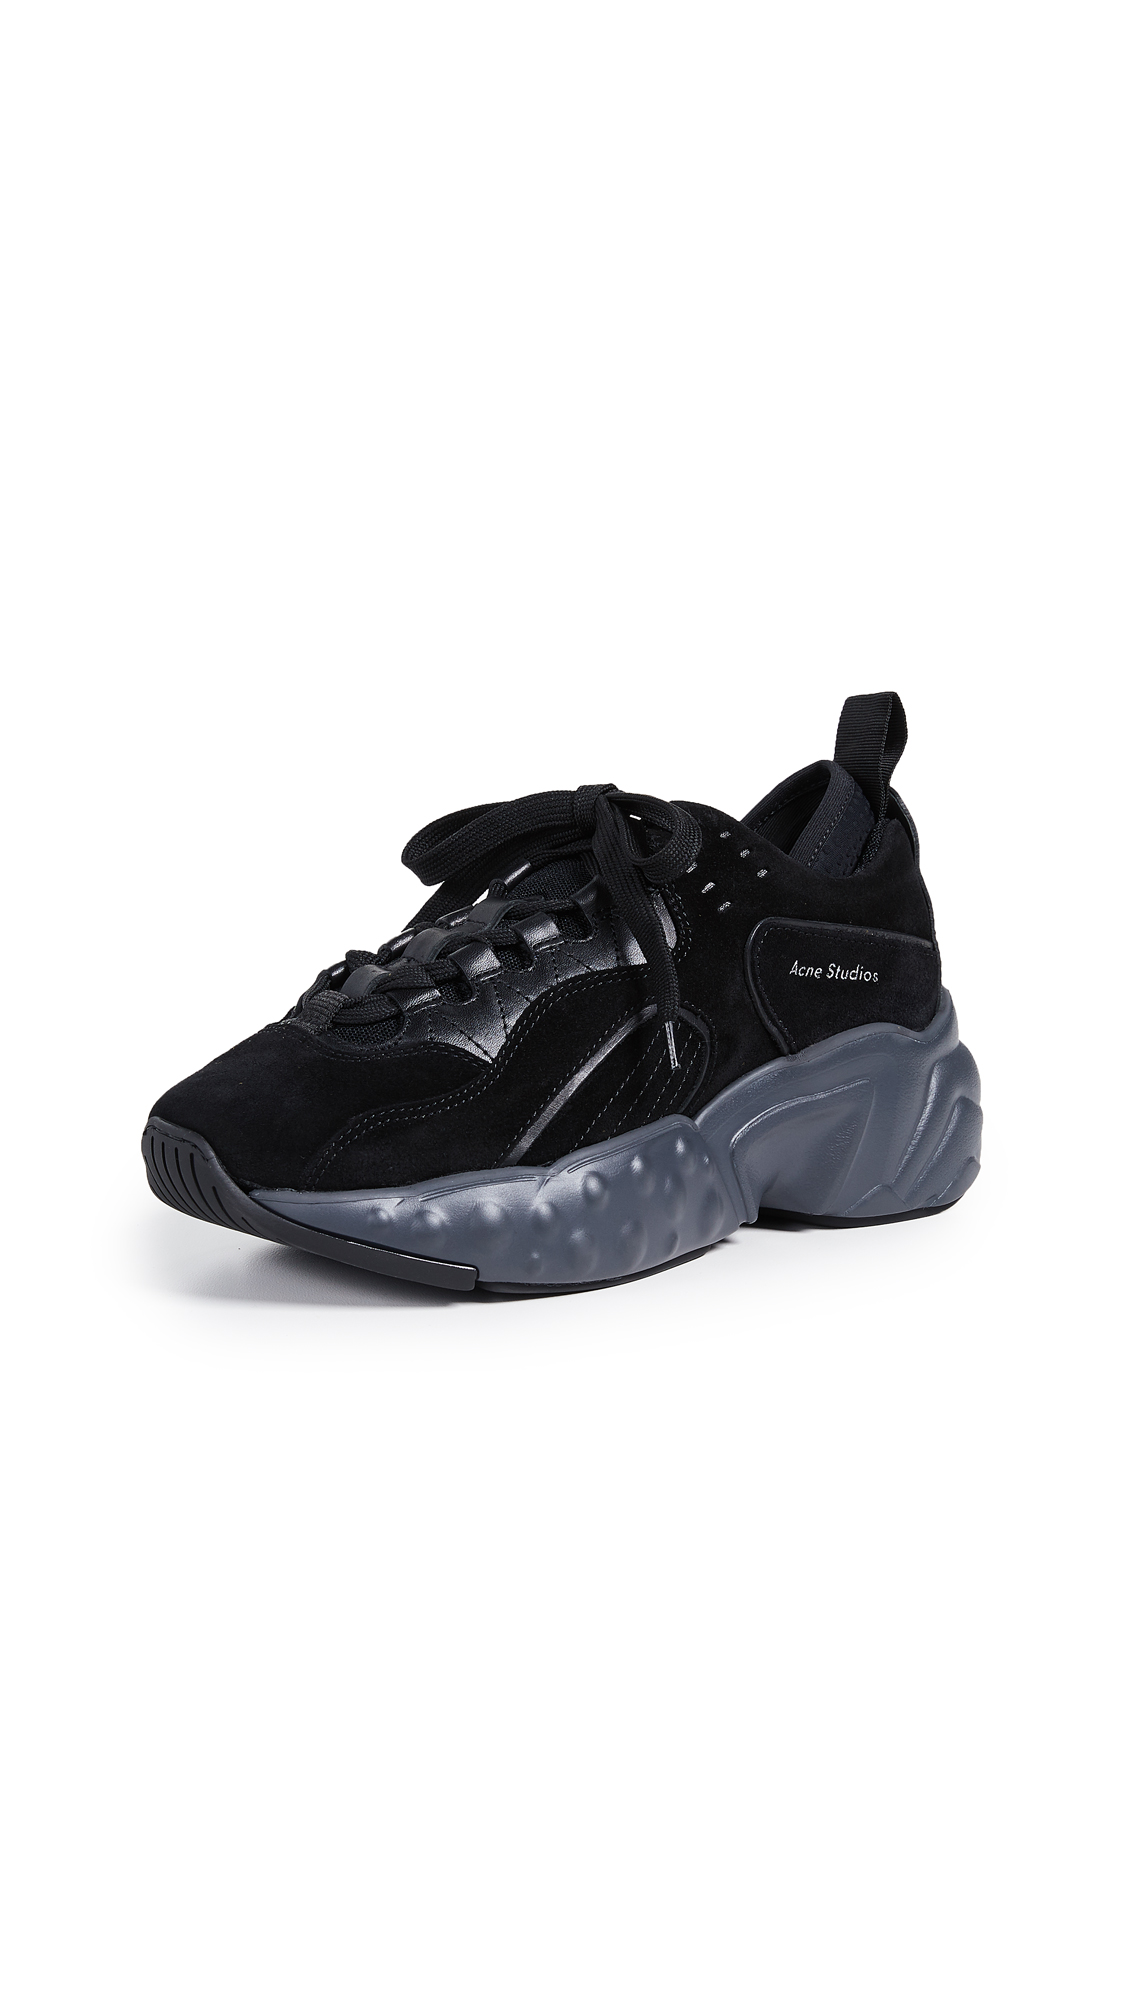 Acne Studios Manhattan Sneakers - Multi/Black